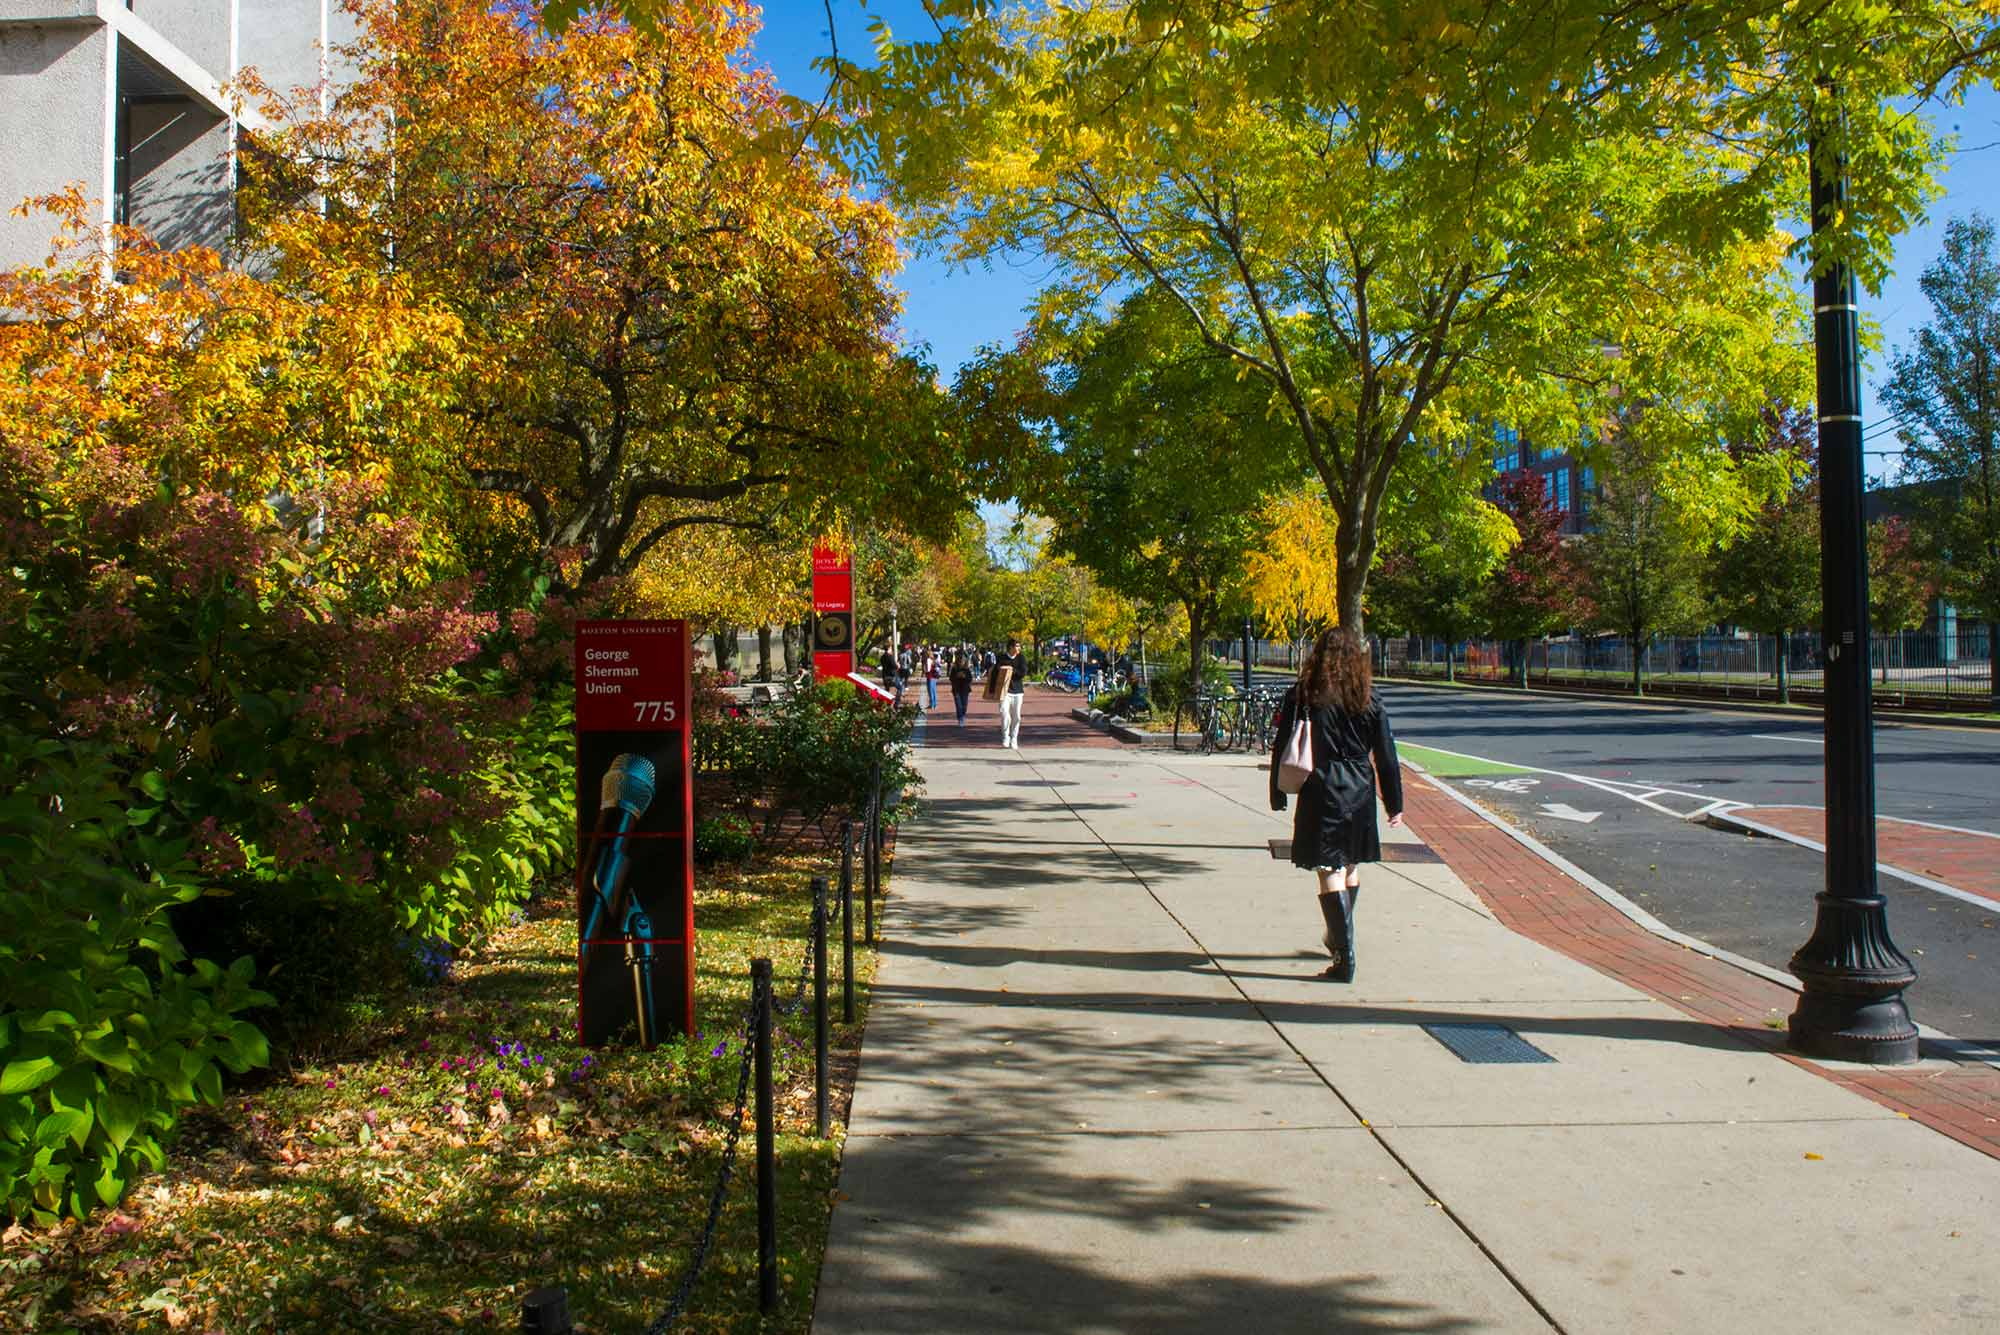 Photo of a student walking down Comm Ave, the trees that line the street have yellow and orange leaves.